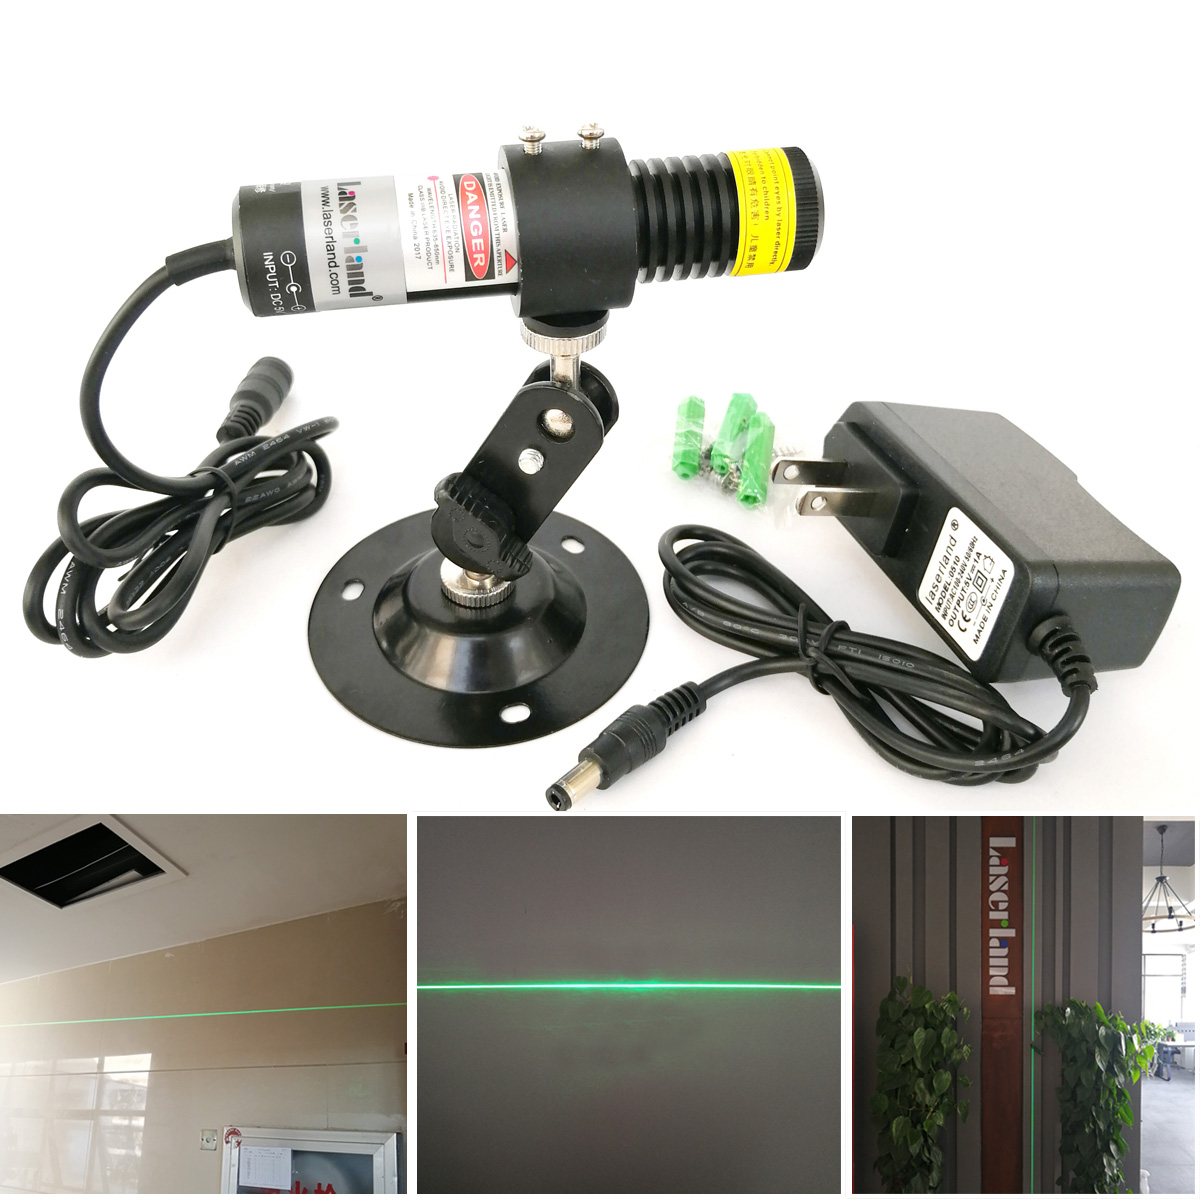 520nm 80mw Green Line Generator Laser Diode Module for Stone Wood Cutting Low Working Temp Osram LD in Dust proof Water proof-in Stage Lighting Effect from Lights & Lighting    1